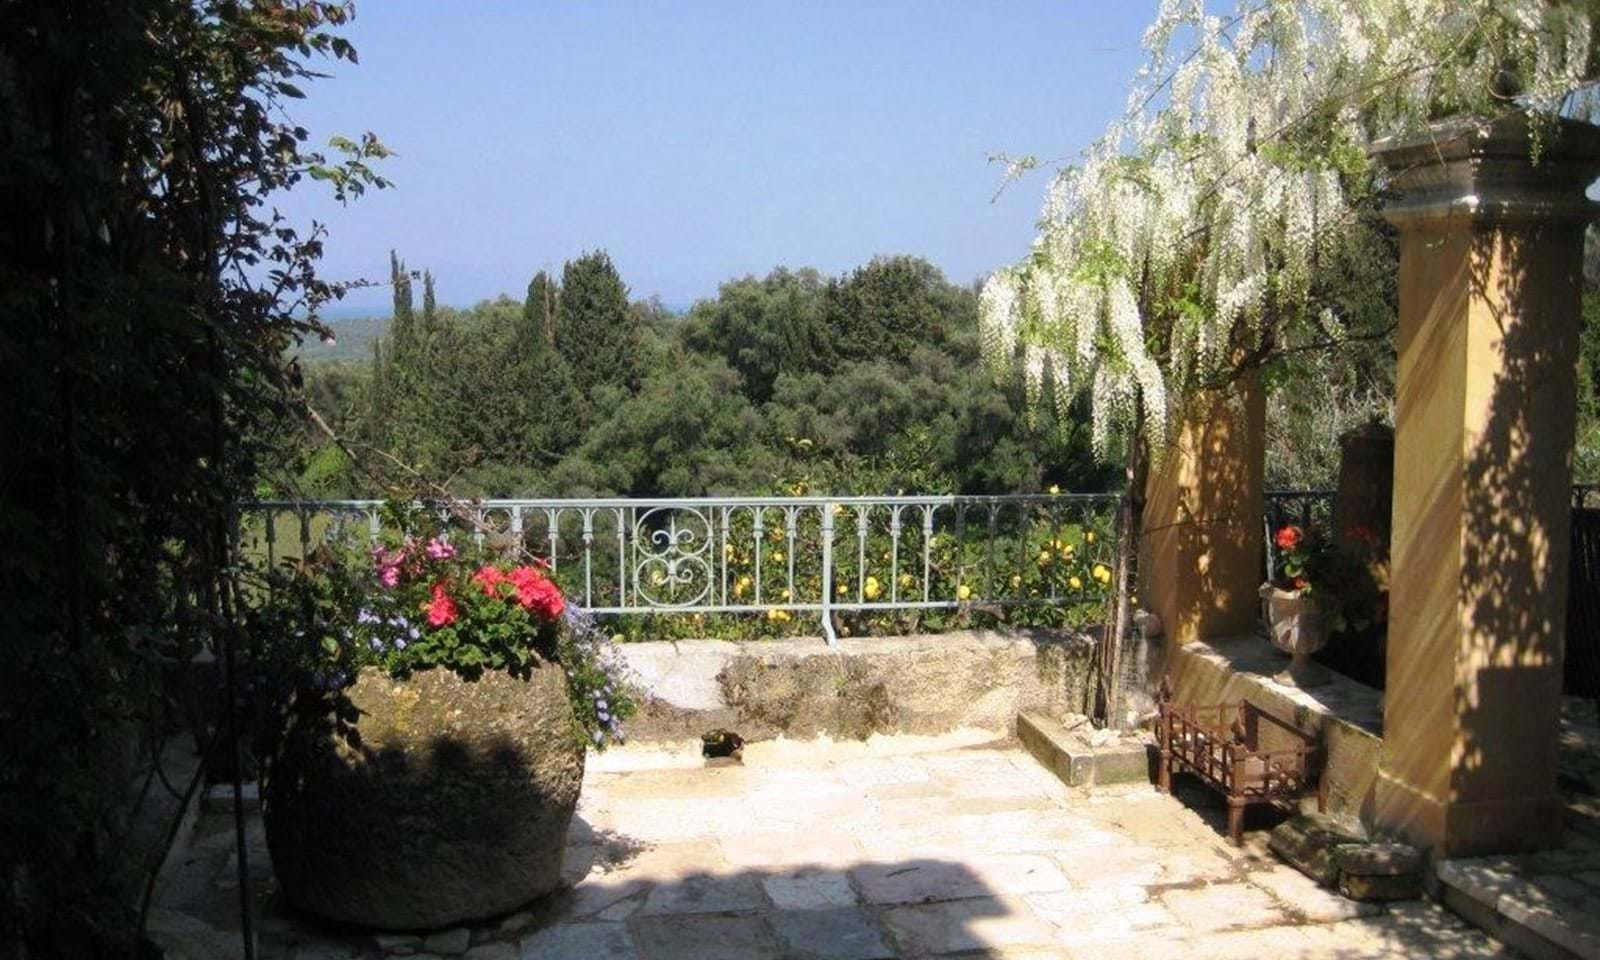 Kaligas Manor House Corfu